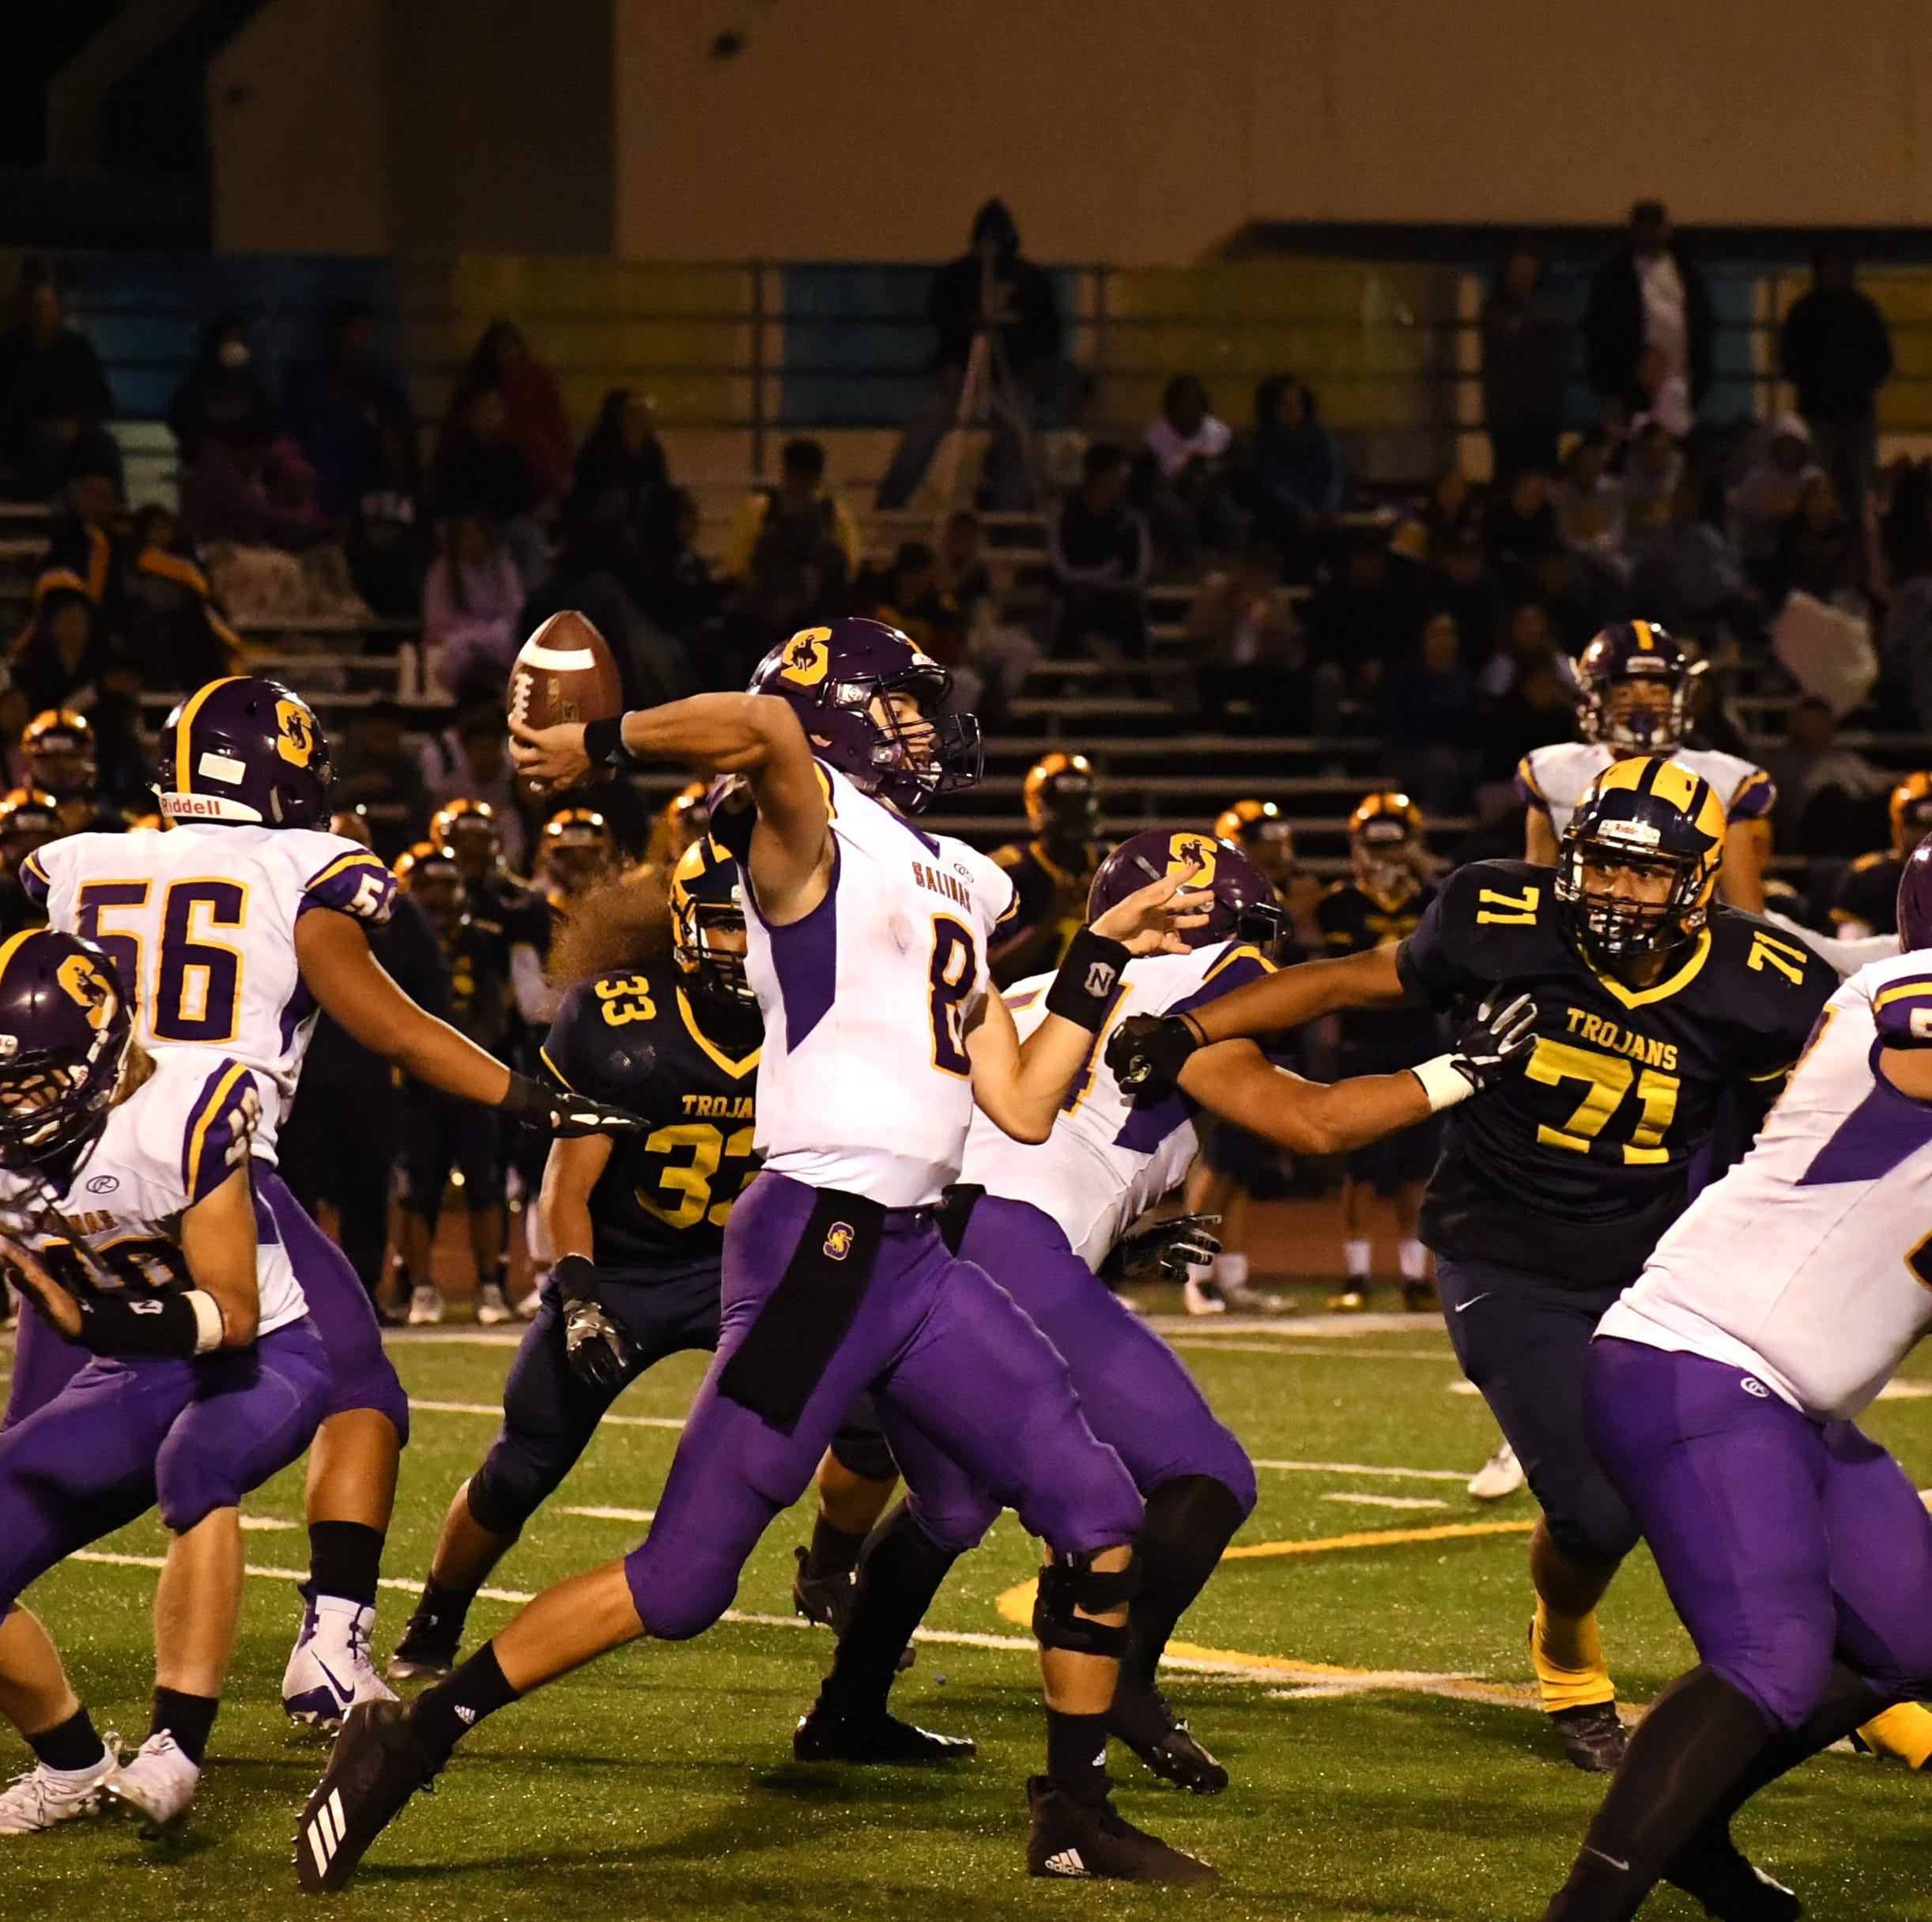 Live coverage: Palma vs. Salinas and week 5 coverage